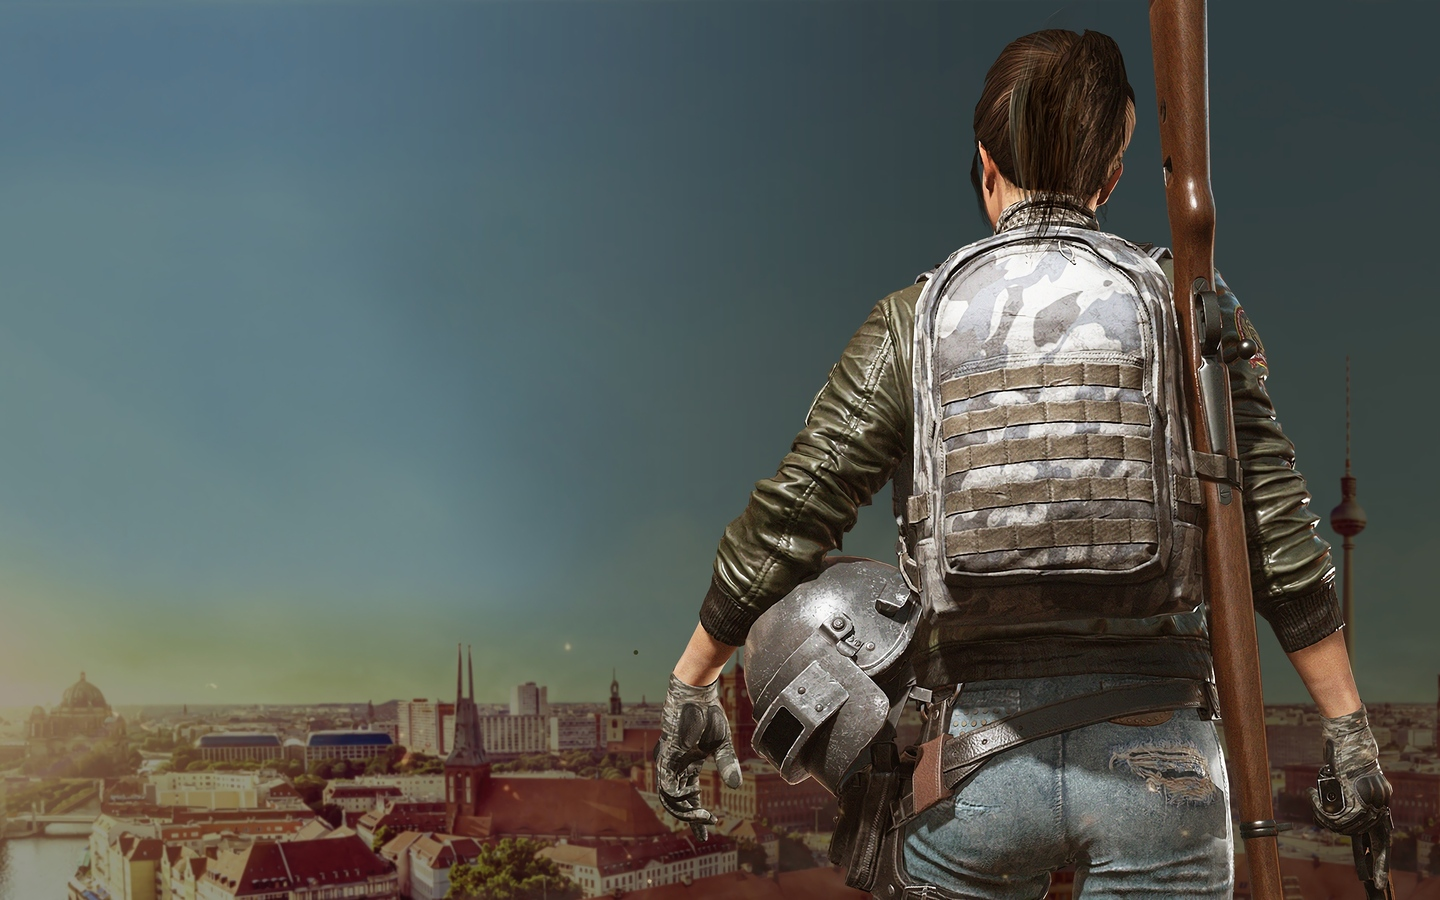 2048x1152 Pubg Game Girl Fanart 2048x1152 Resolution Hd 4k: 1440x900 Game Girl Pubg 4k 1440x900 Resolution HD 4k